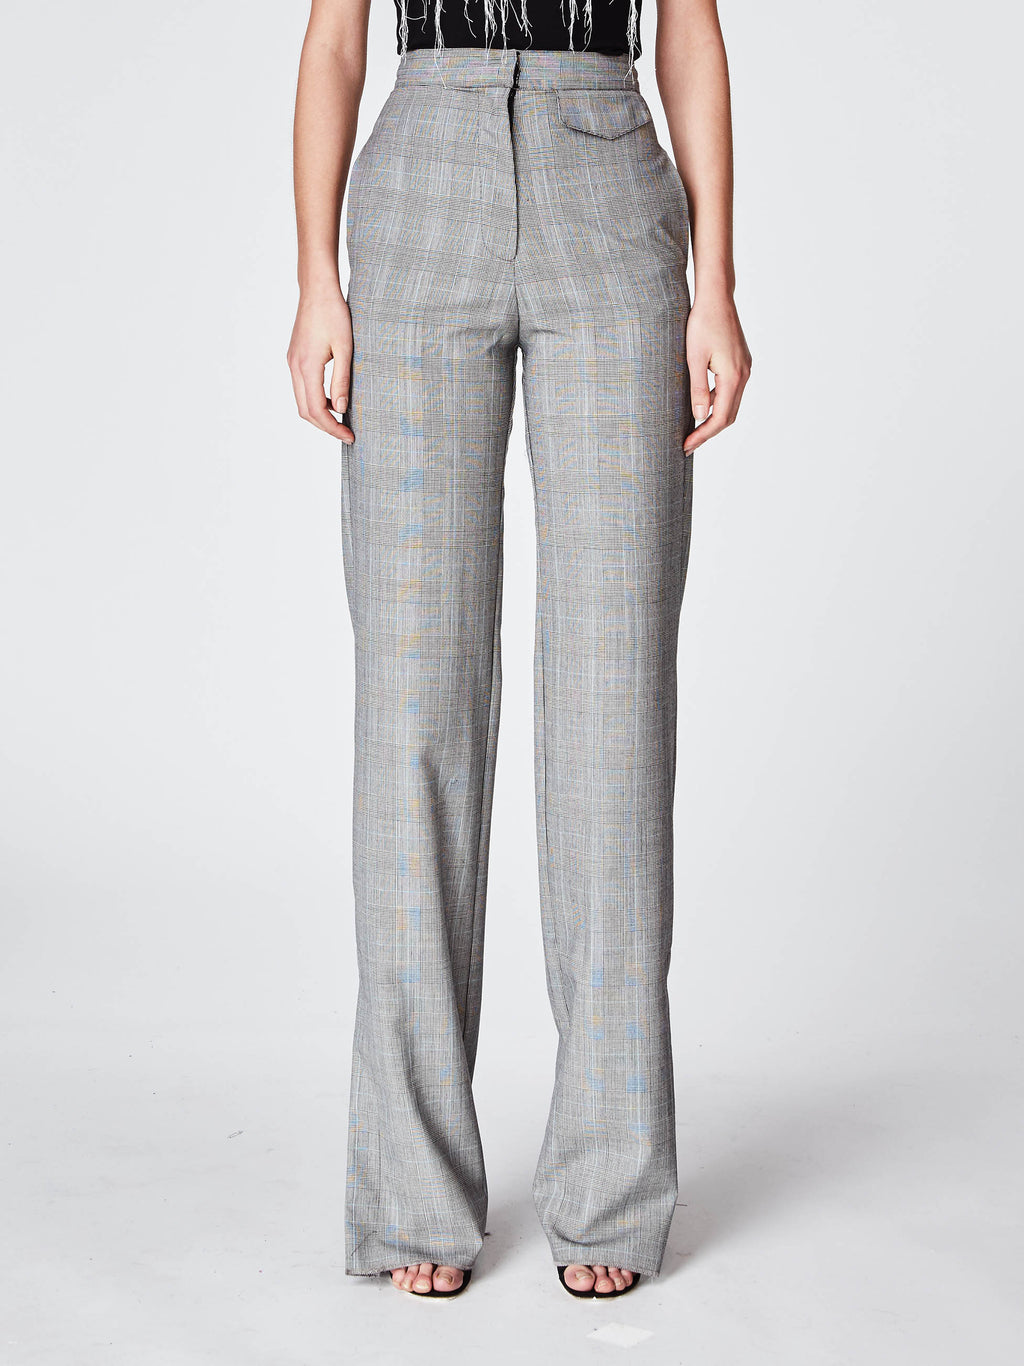 BM10199 - GLEN PLAID HIGH WAISTED PANT - bottoms - pants - In a light grey plaid, these high waisted tousers are fitted along the waist and fall to a straight-leg fit. Finished with a zipper and claspfor closure and unlined. Pair with the matching jacket for the perfect Fall look.